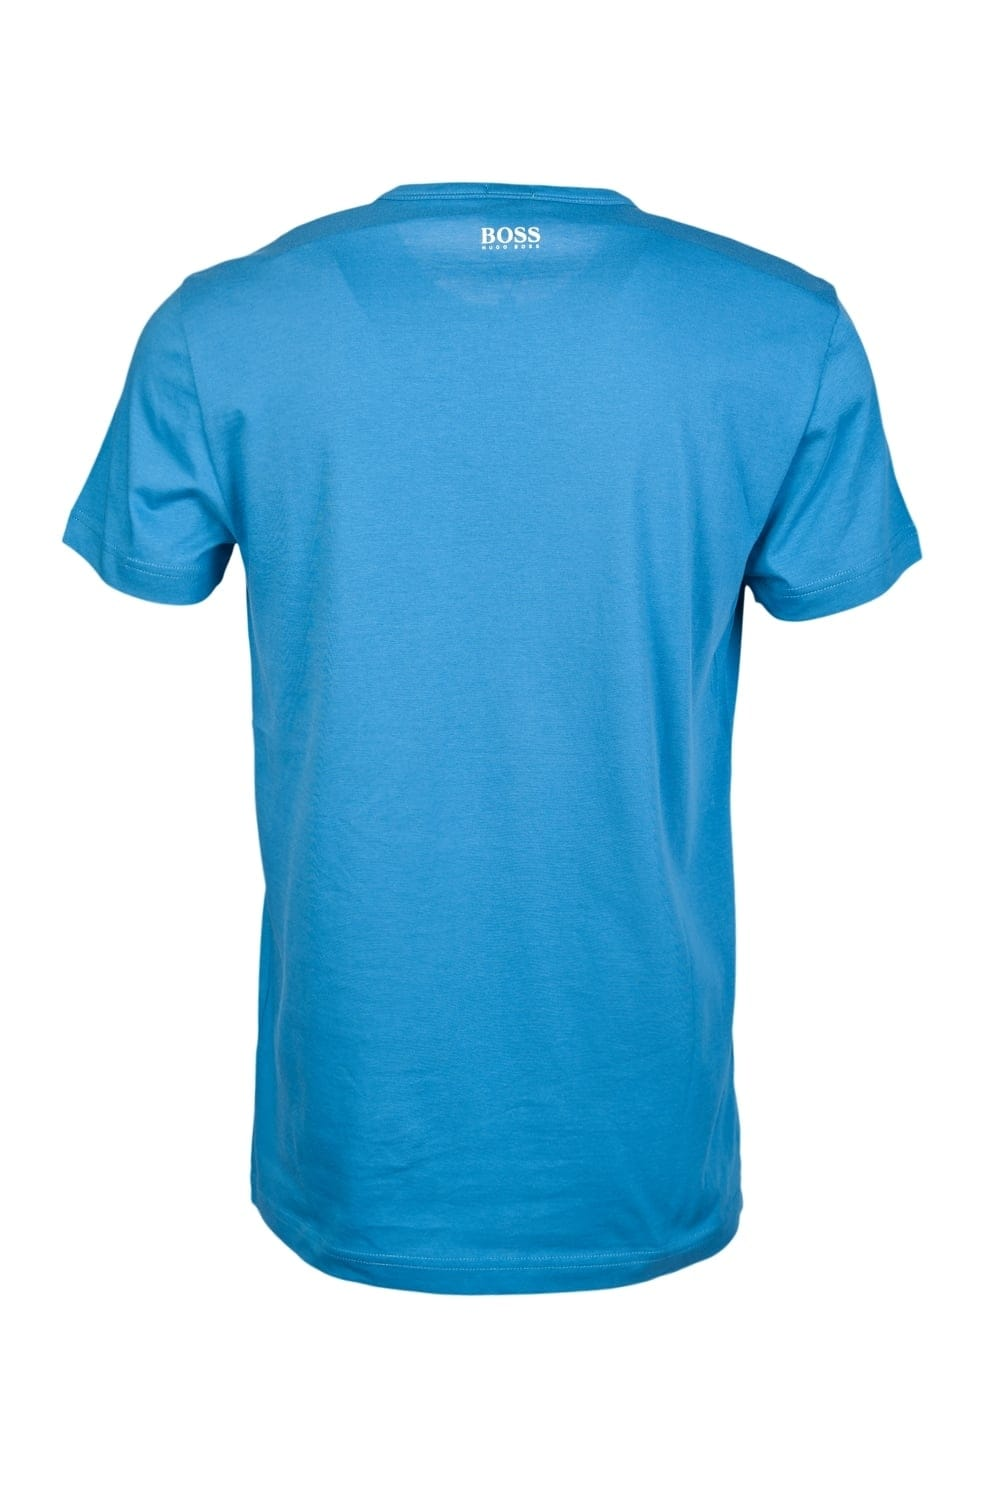 Hugo boss t shirt tee 2 50309994 boss green from sage for Hugo boss t shirts online